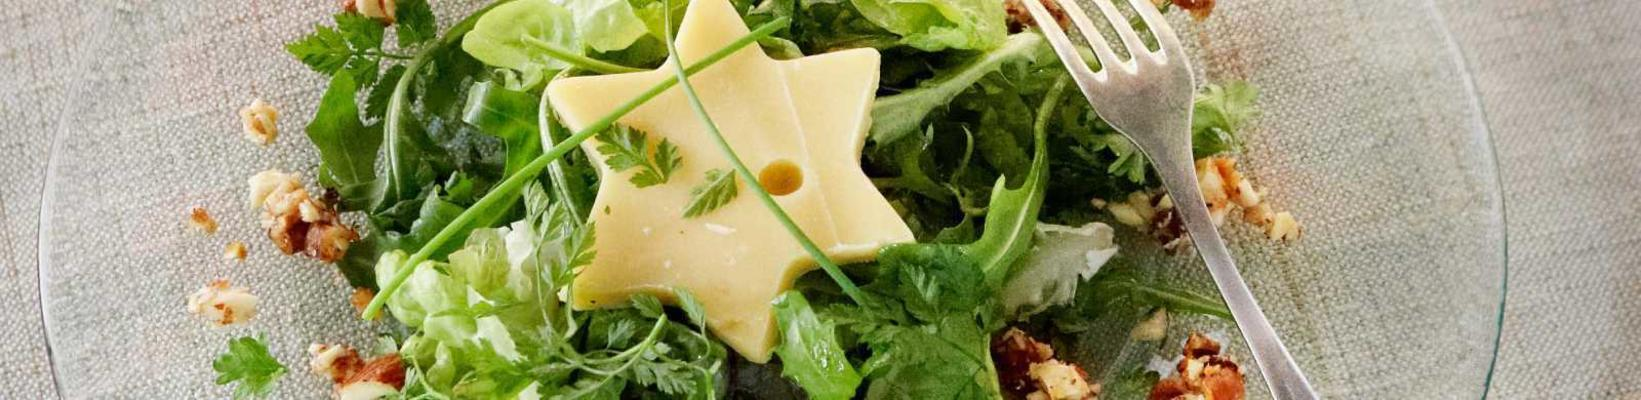 green salad with cheese stars and honey-nut crunch